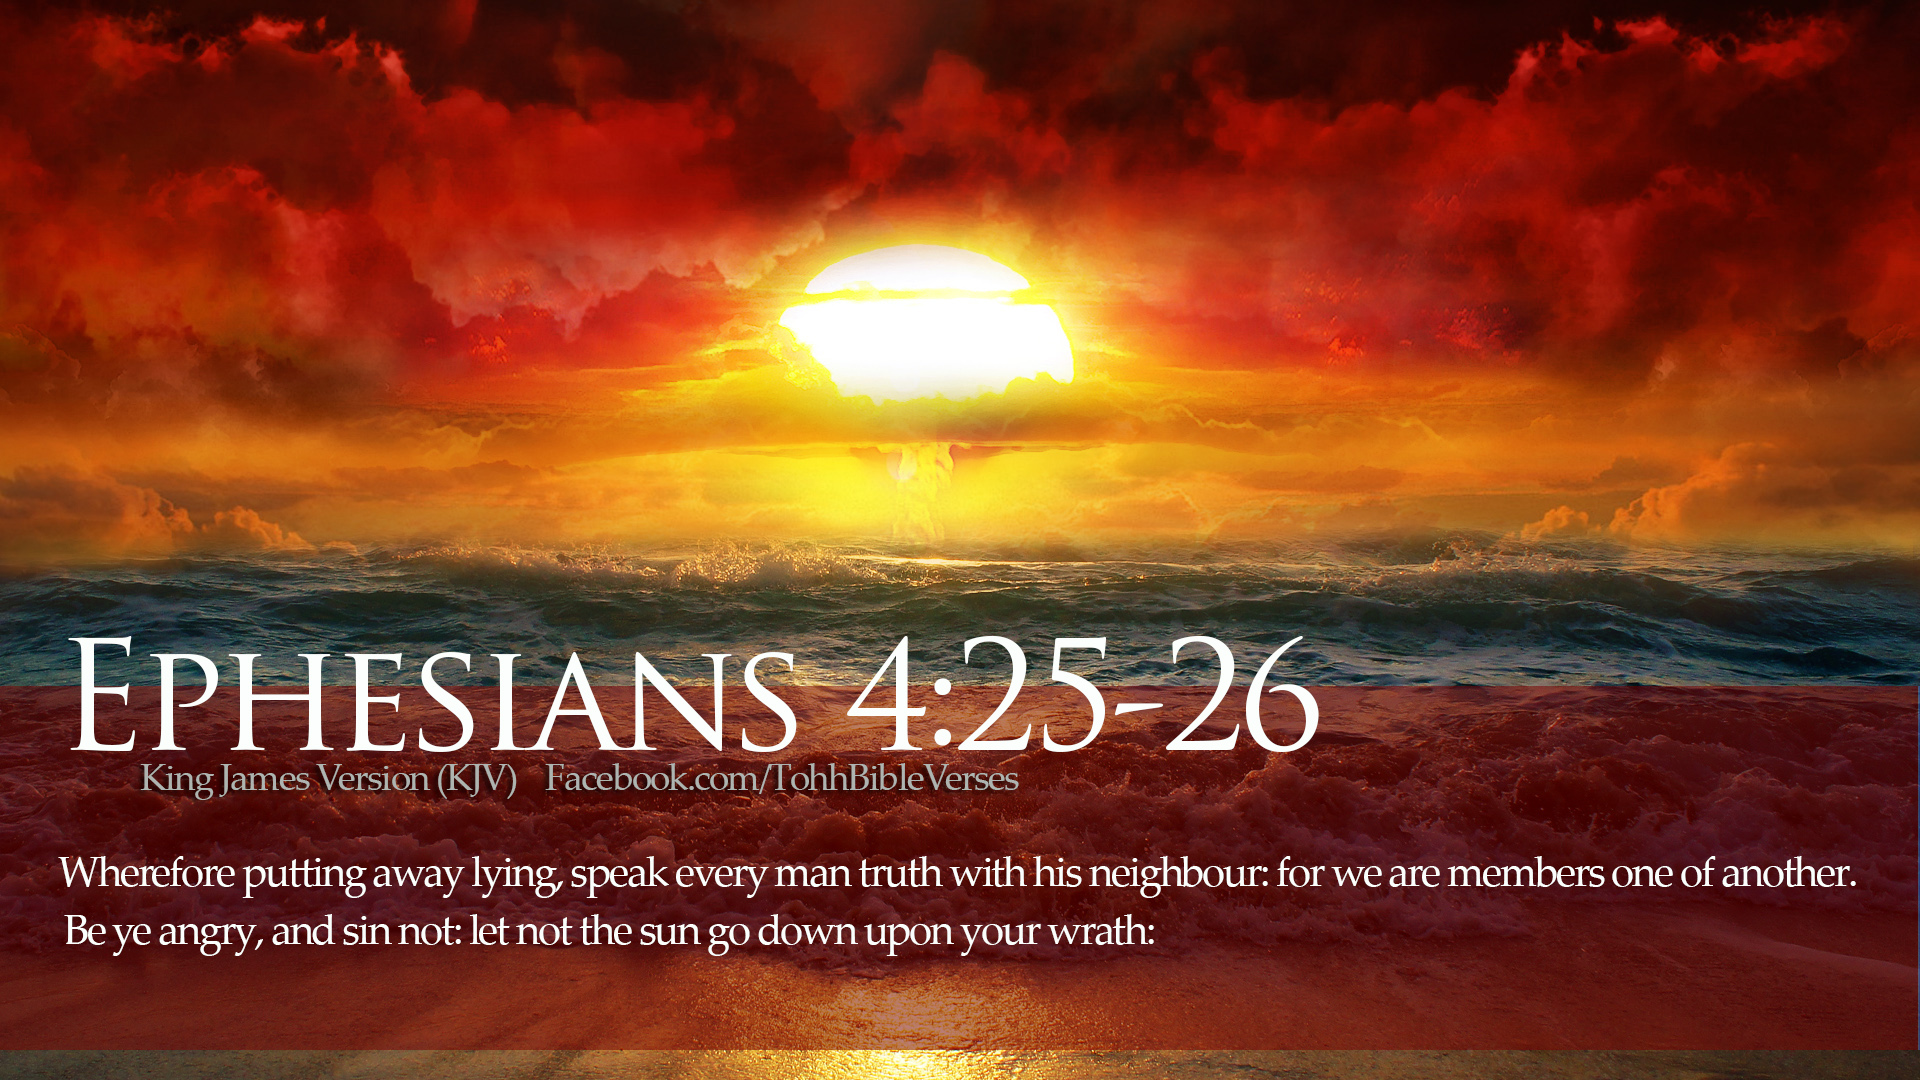 Free Christian Wallpaper Bible Verse Desktop Backgrounds 1920x1080